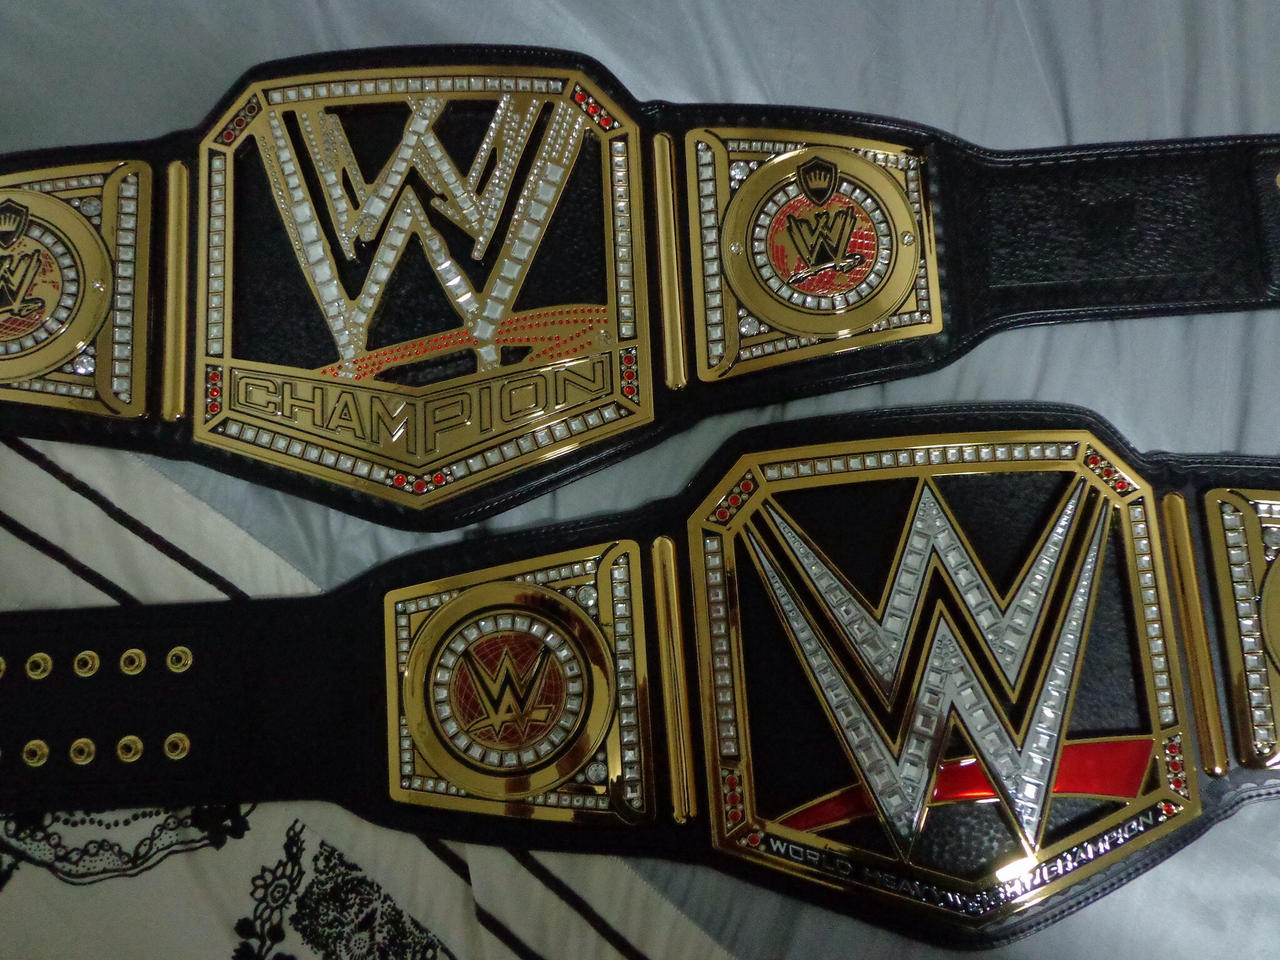 Wwe World Heavyweight Championship Belt 2014 WWE CHAMPIONSHIP AND W...